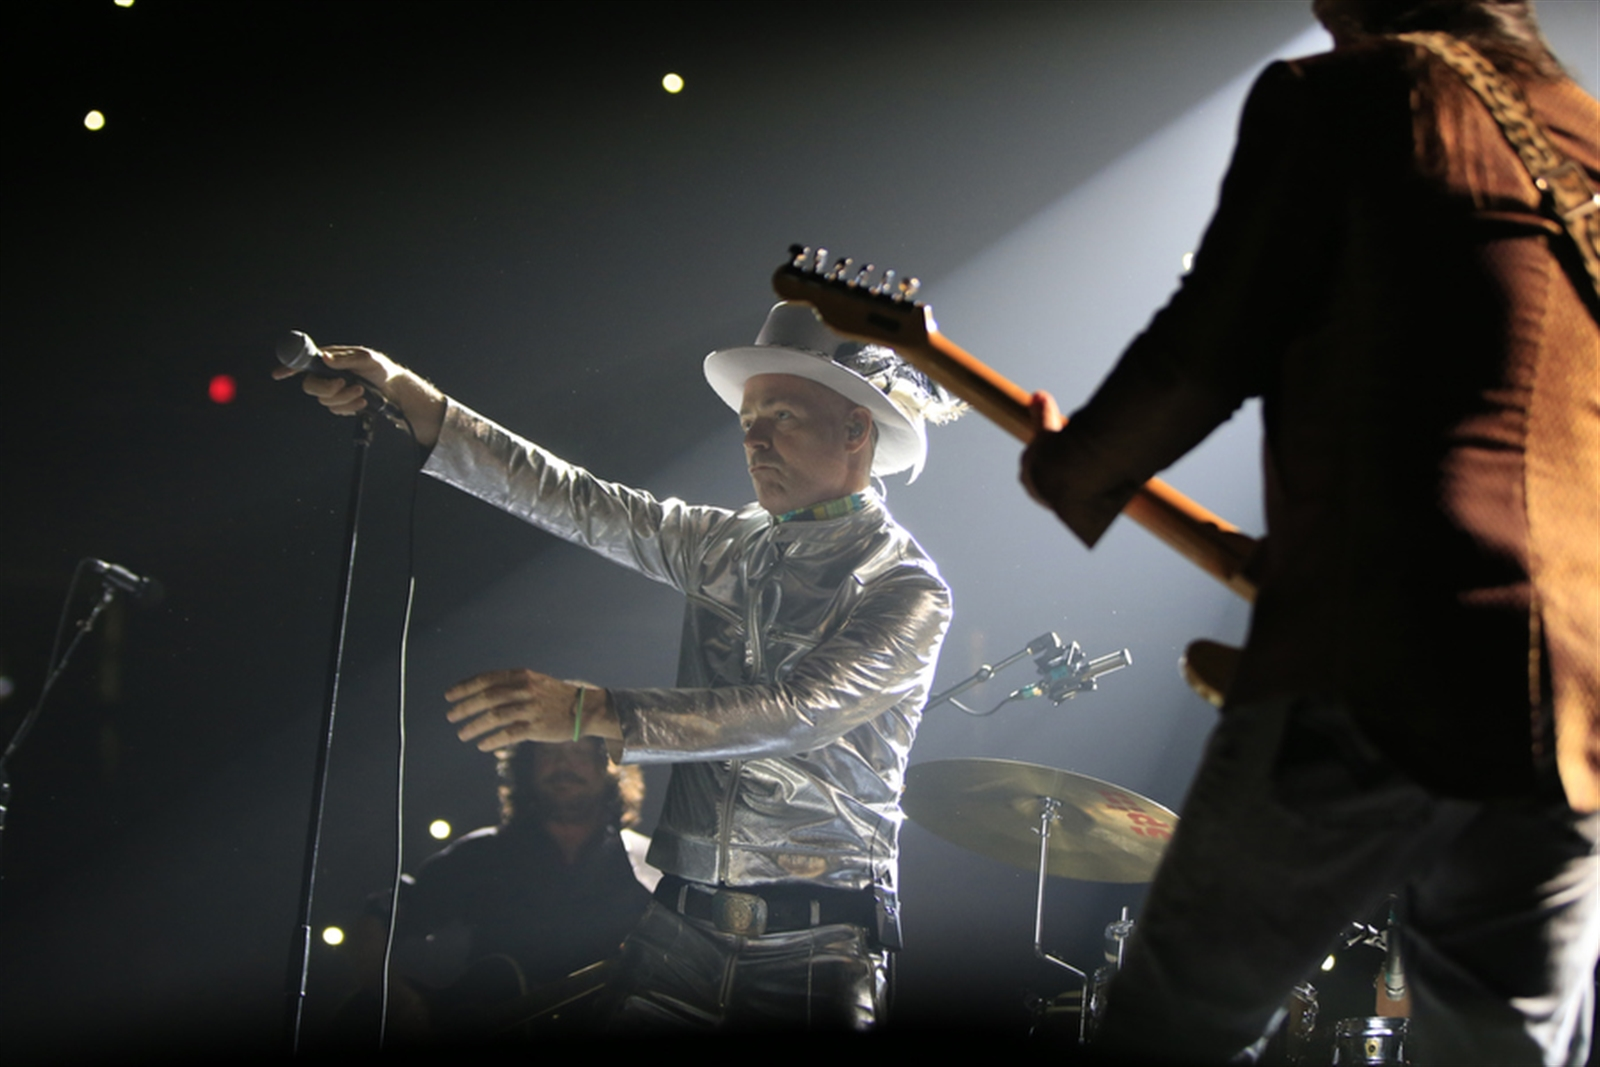 Gord Downie of The Tragically Hip performs at the First Ontario Centre in Hamilton, Ont., on Tuesday, Aug. 16, 2016.